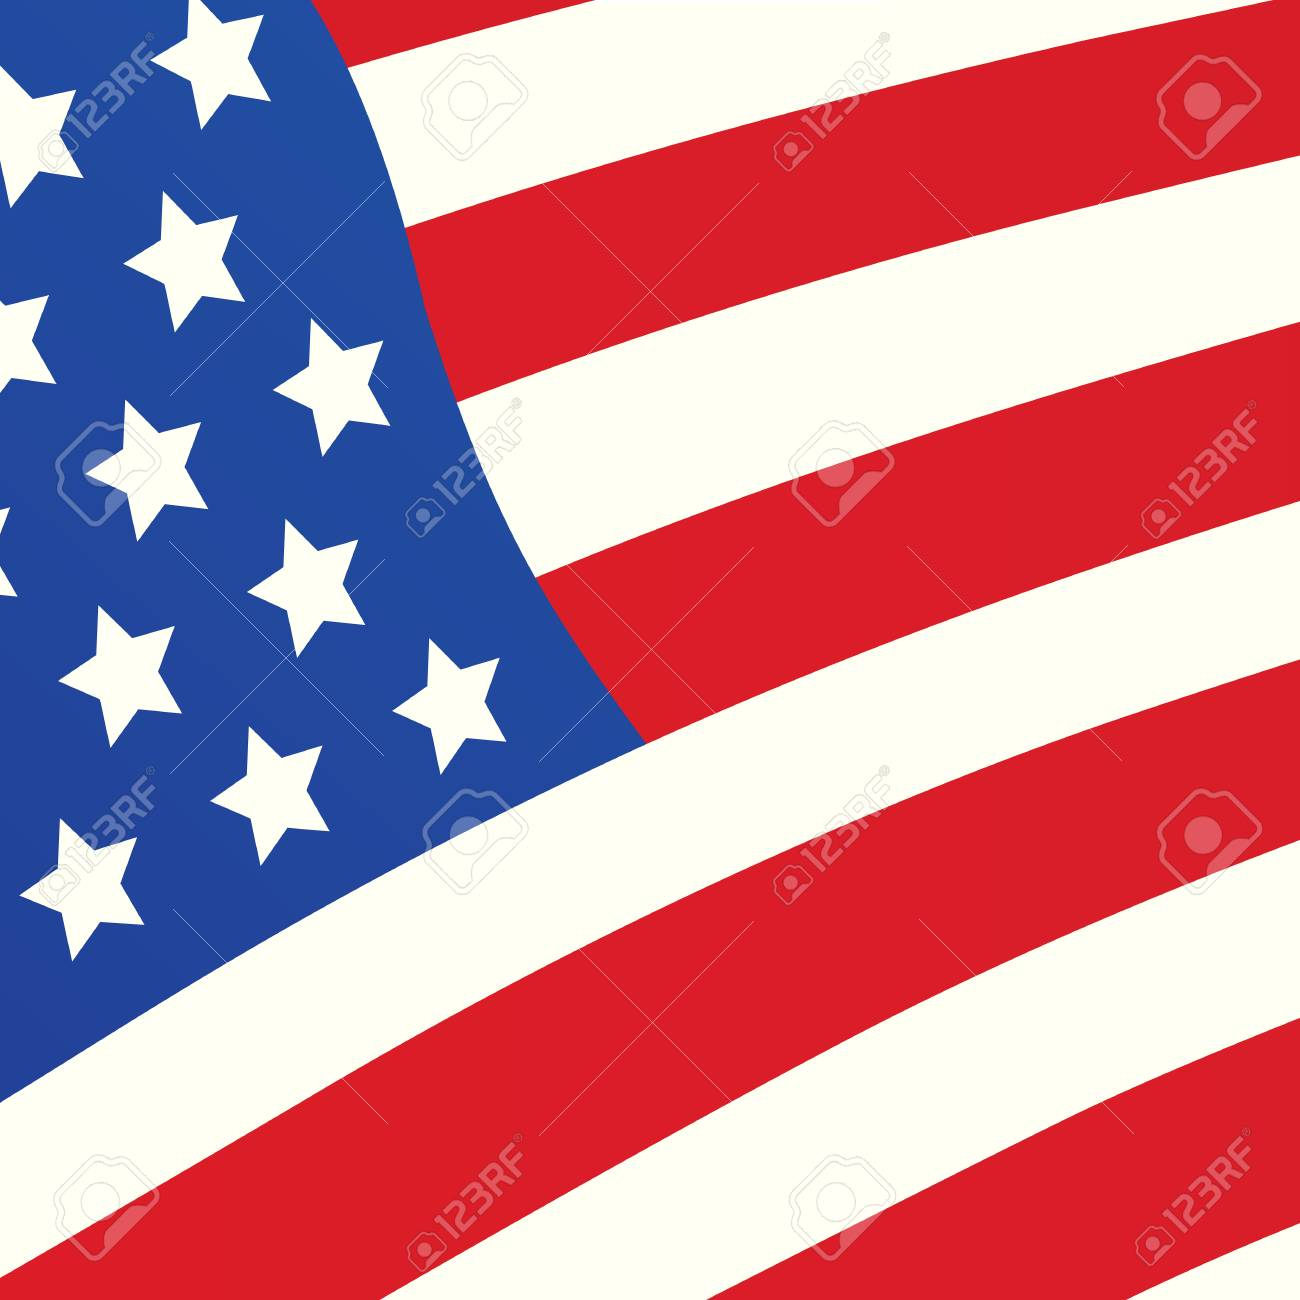 stock photo vector american flag cover design template for independence day banner sale offer party poster brochure catalog book presentation